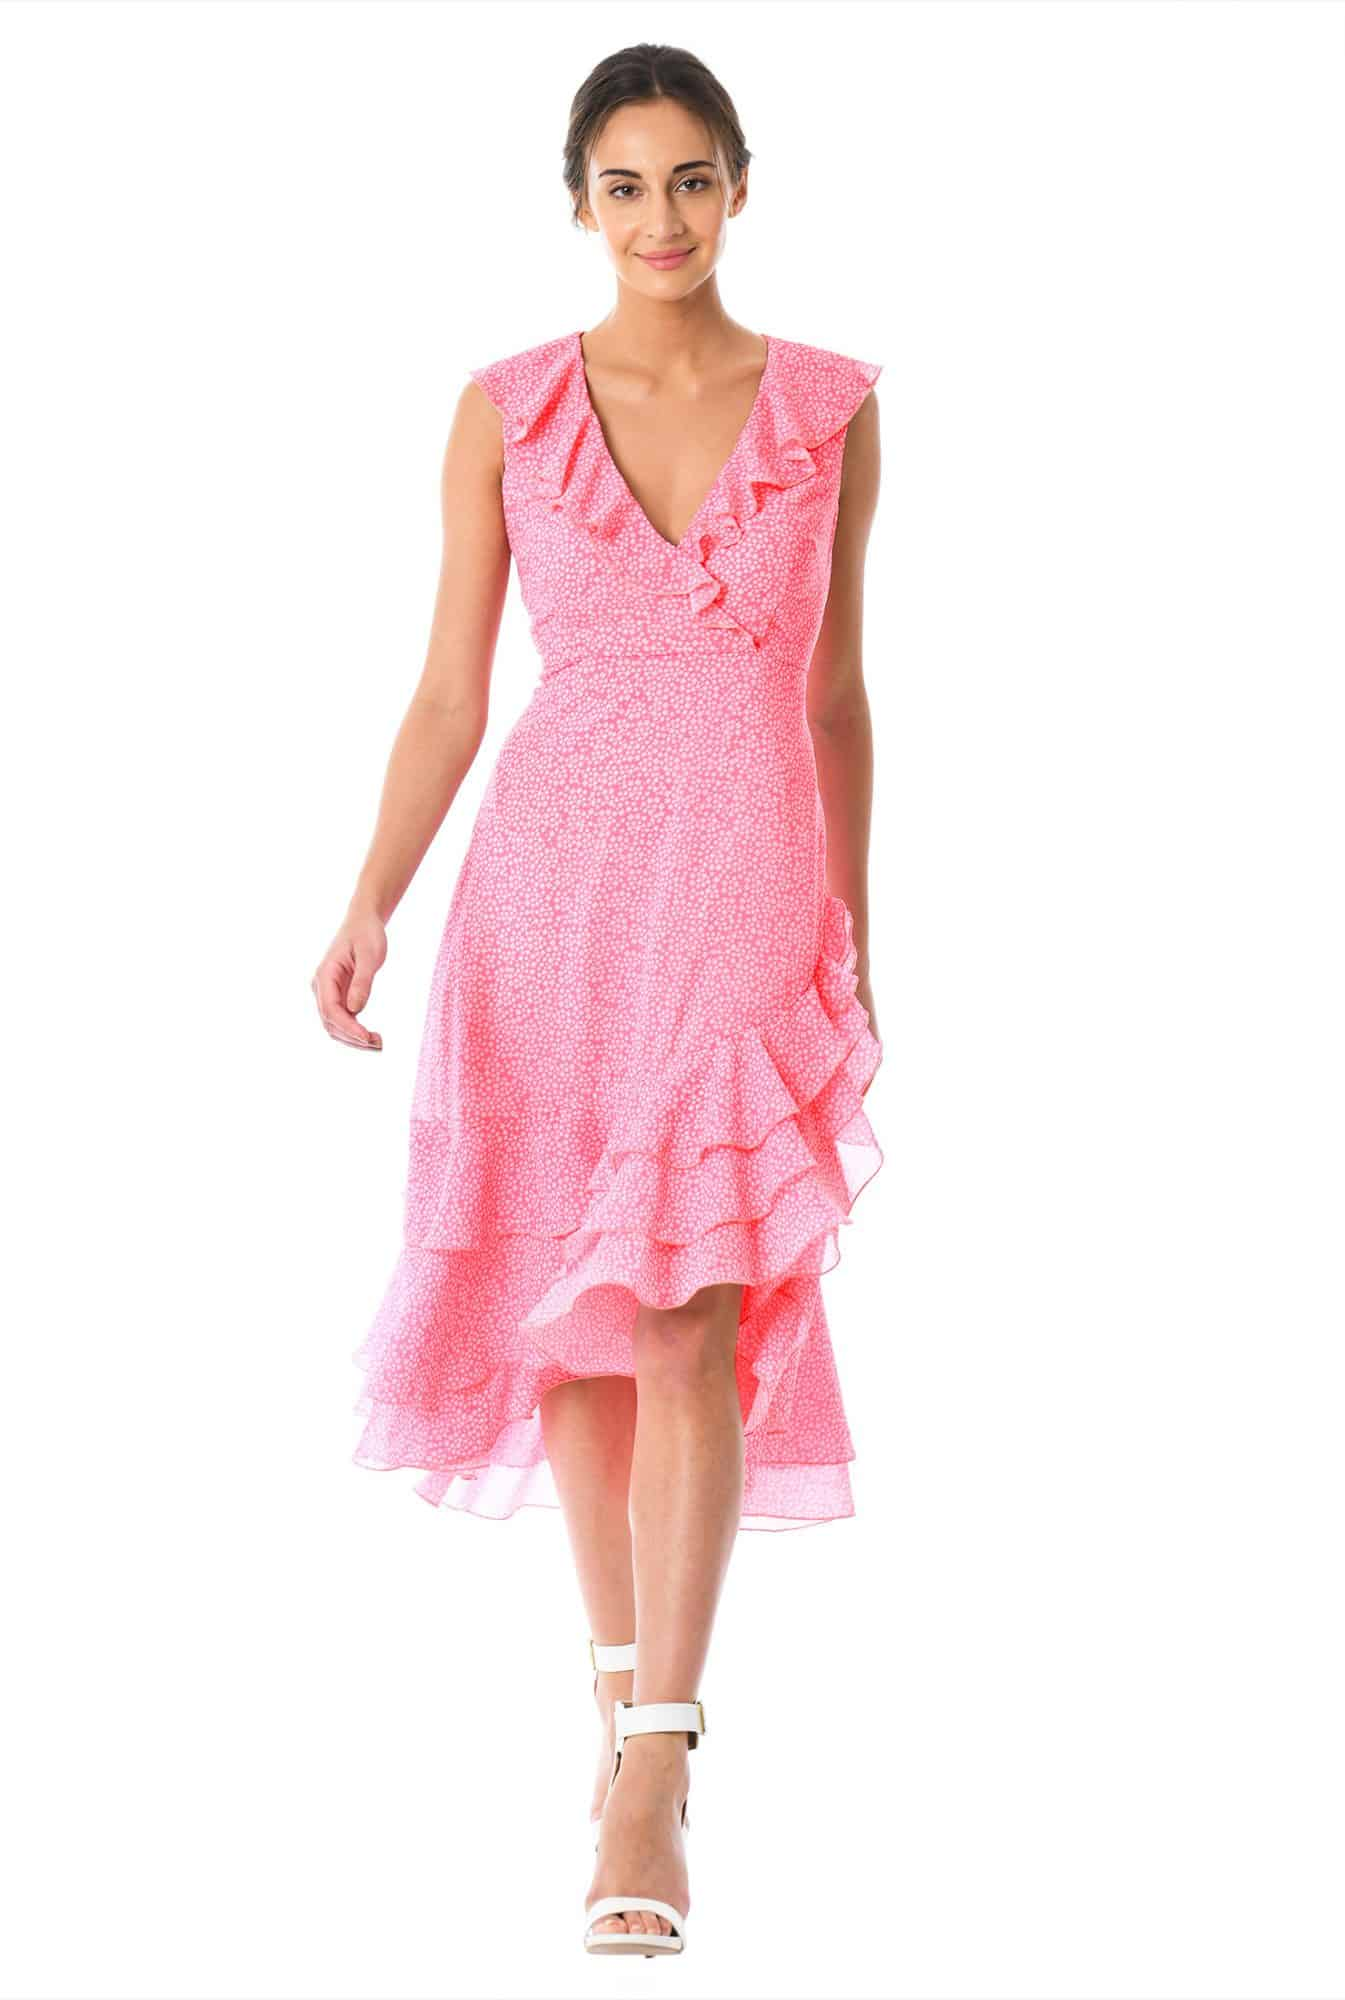 From Church To Wedding To Black Tie Event: Getting Dressy. A pink ruffled silk dress.